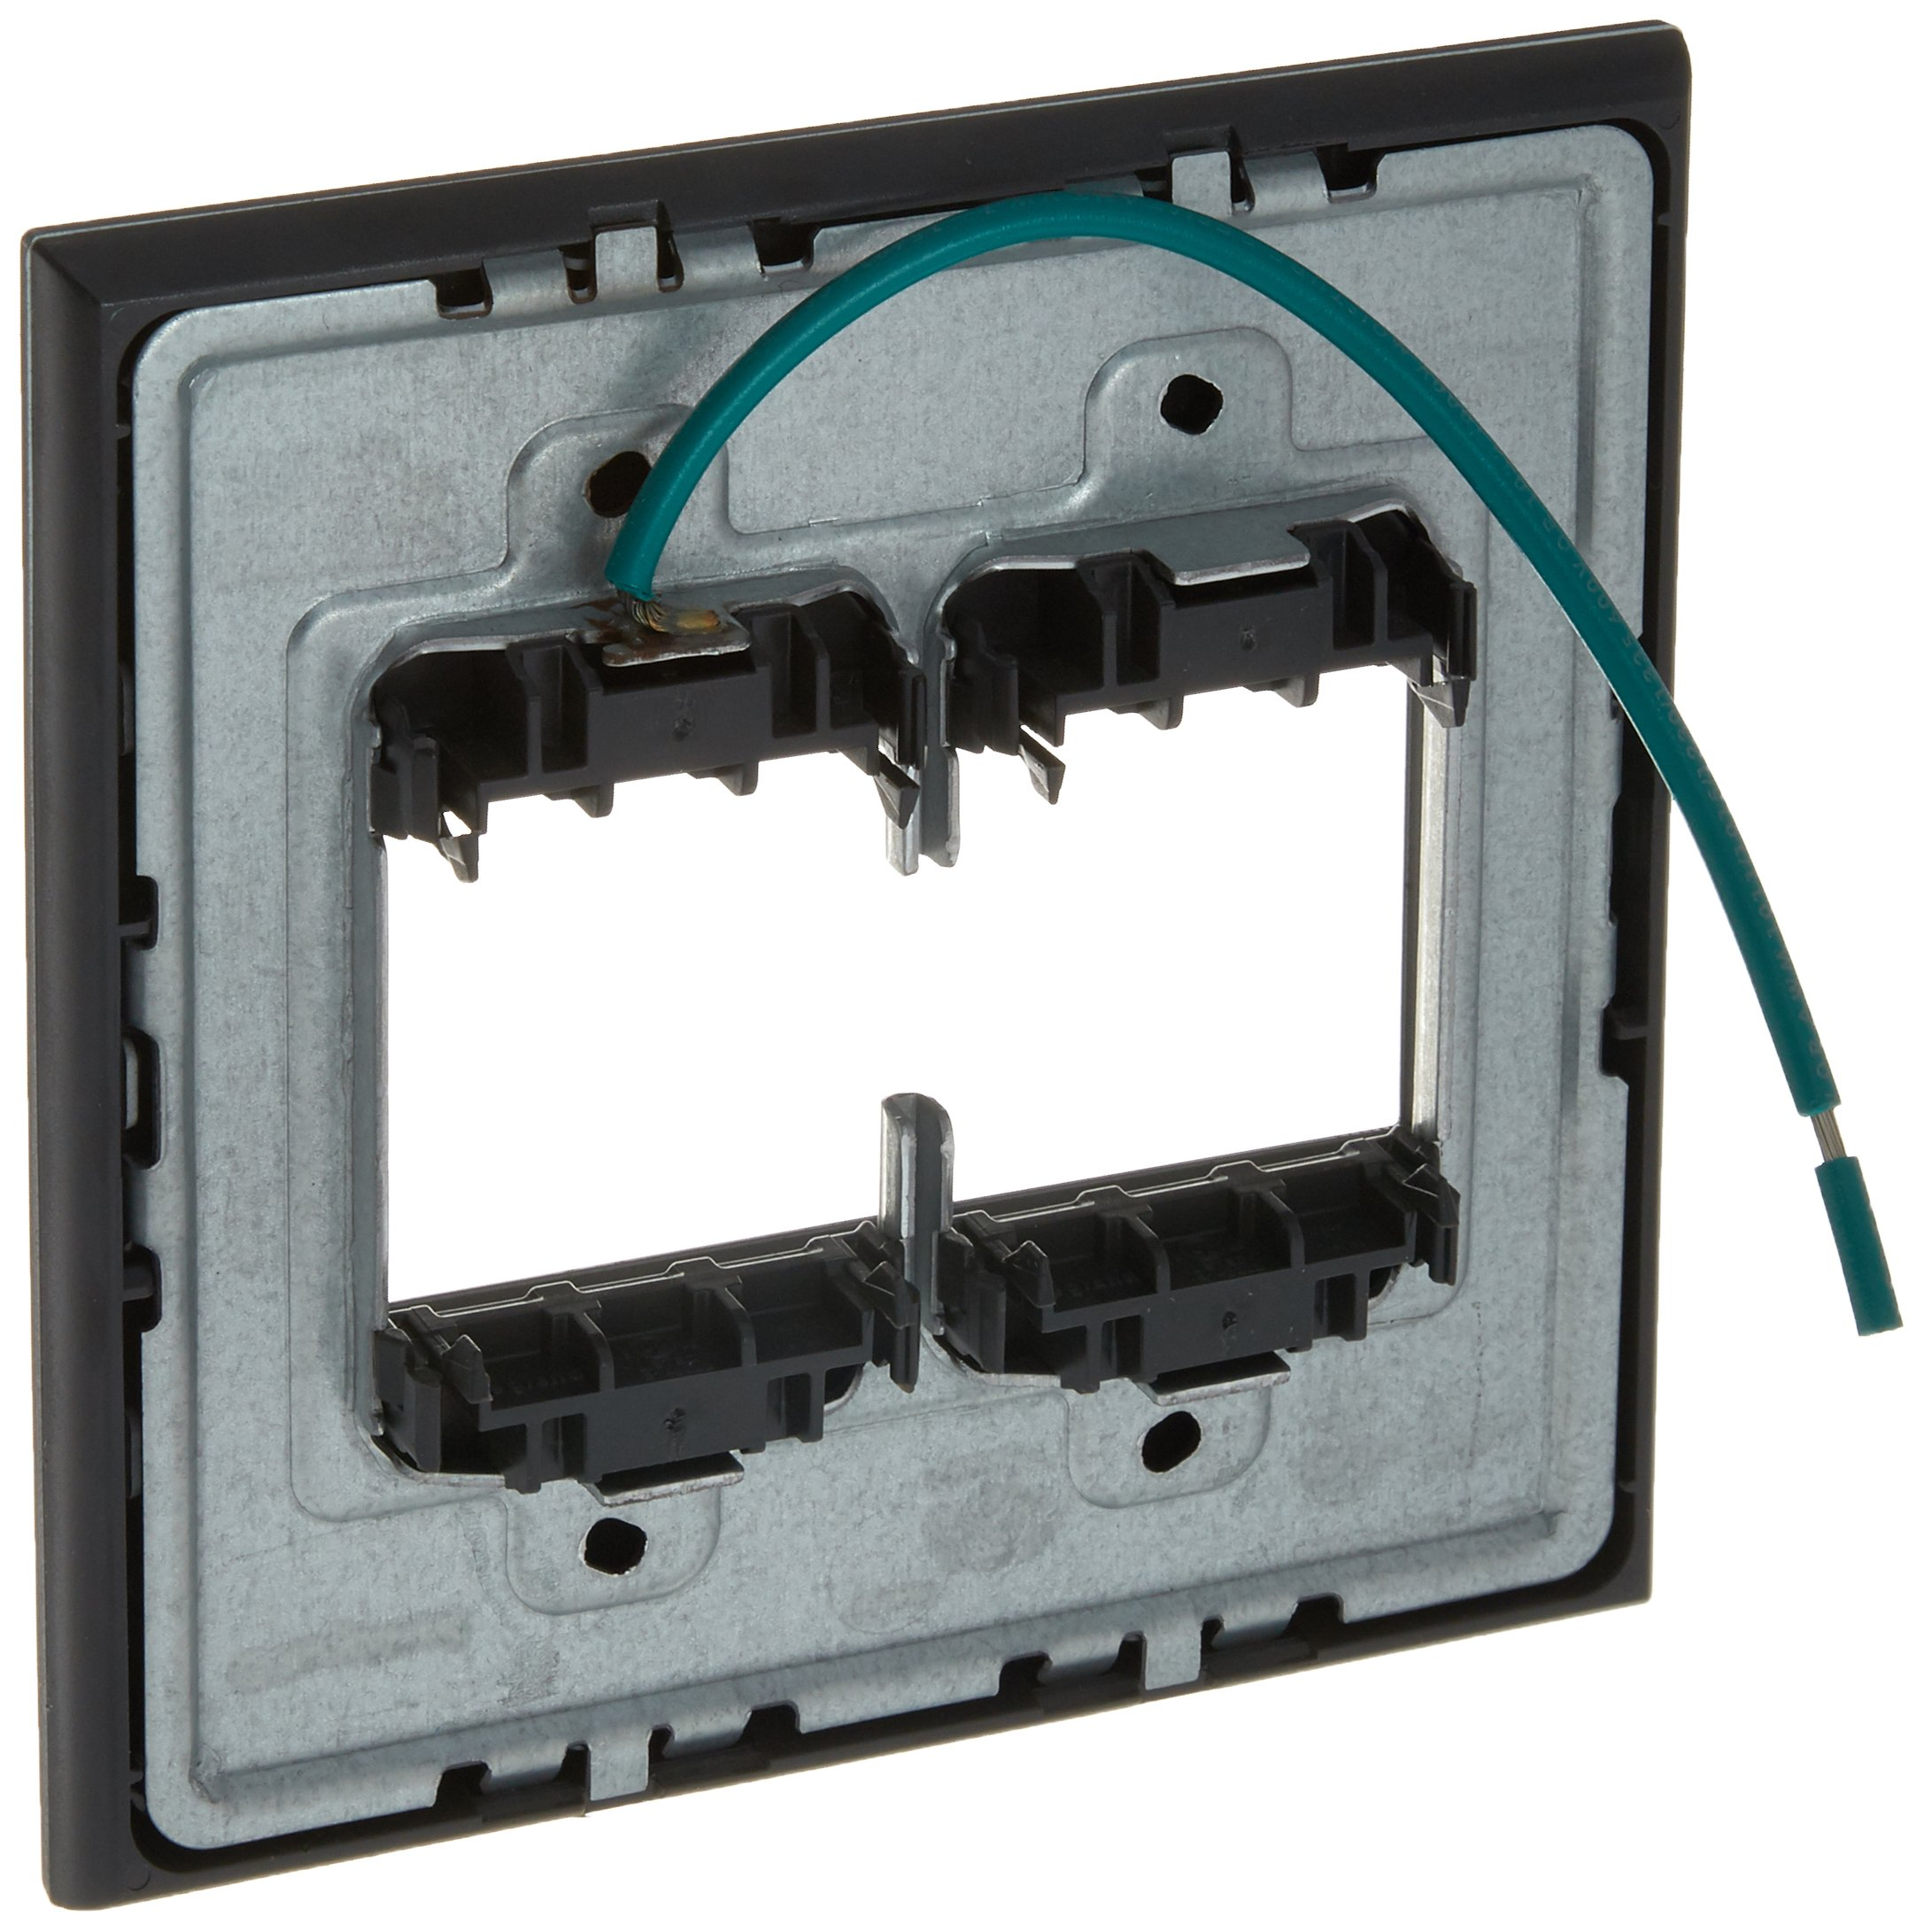 PASS & SEYMOUR AWP2GMG4 Adorne 2 Gang Magnesium Wall Plate by Pass & Seymour (Image #2)